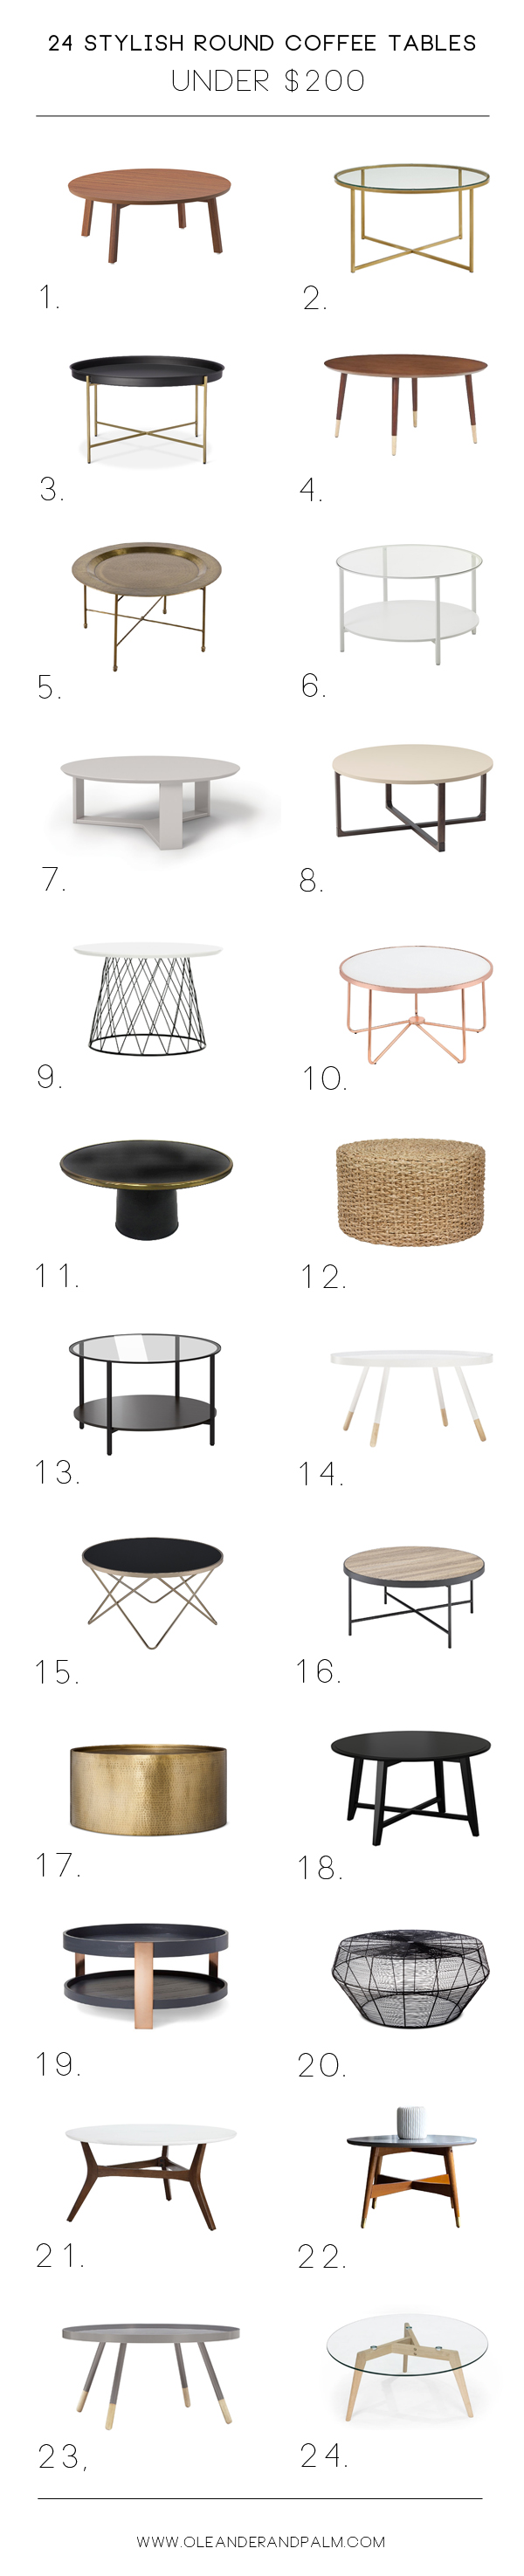 24 Stylish Round Coffee Tables Under $200